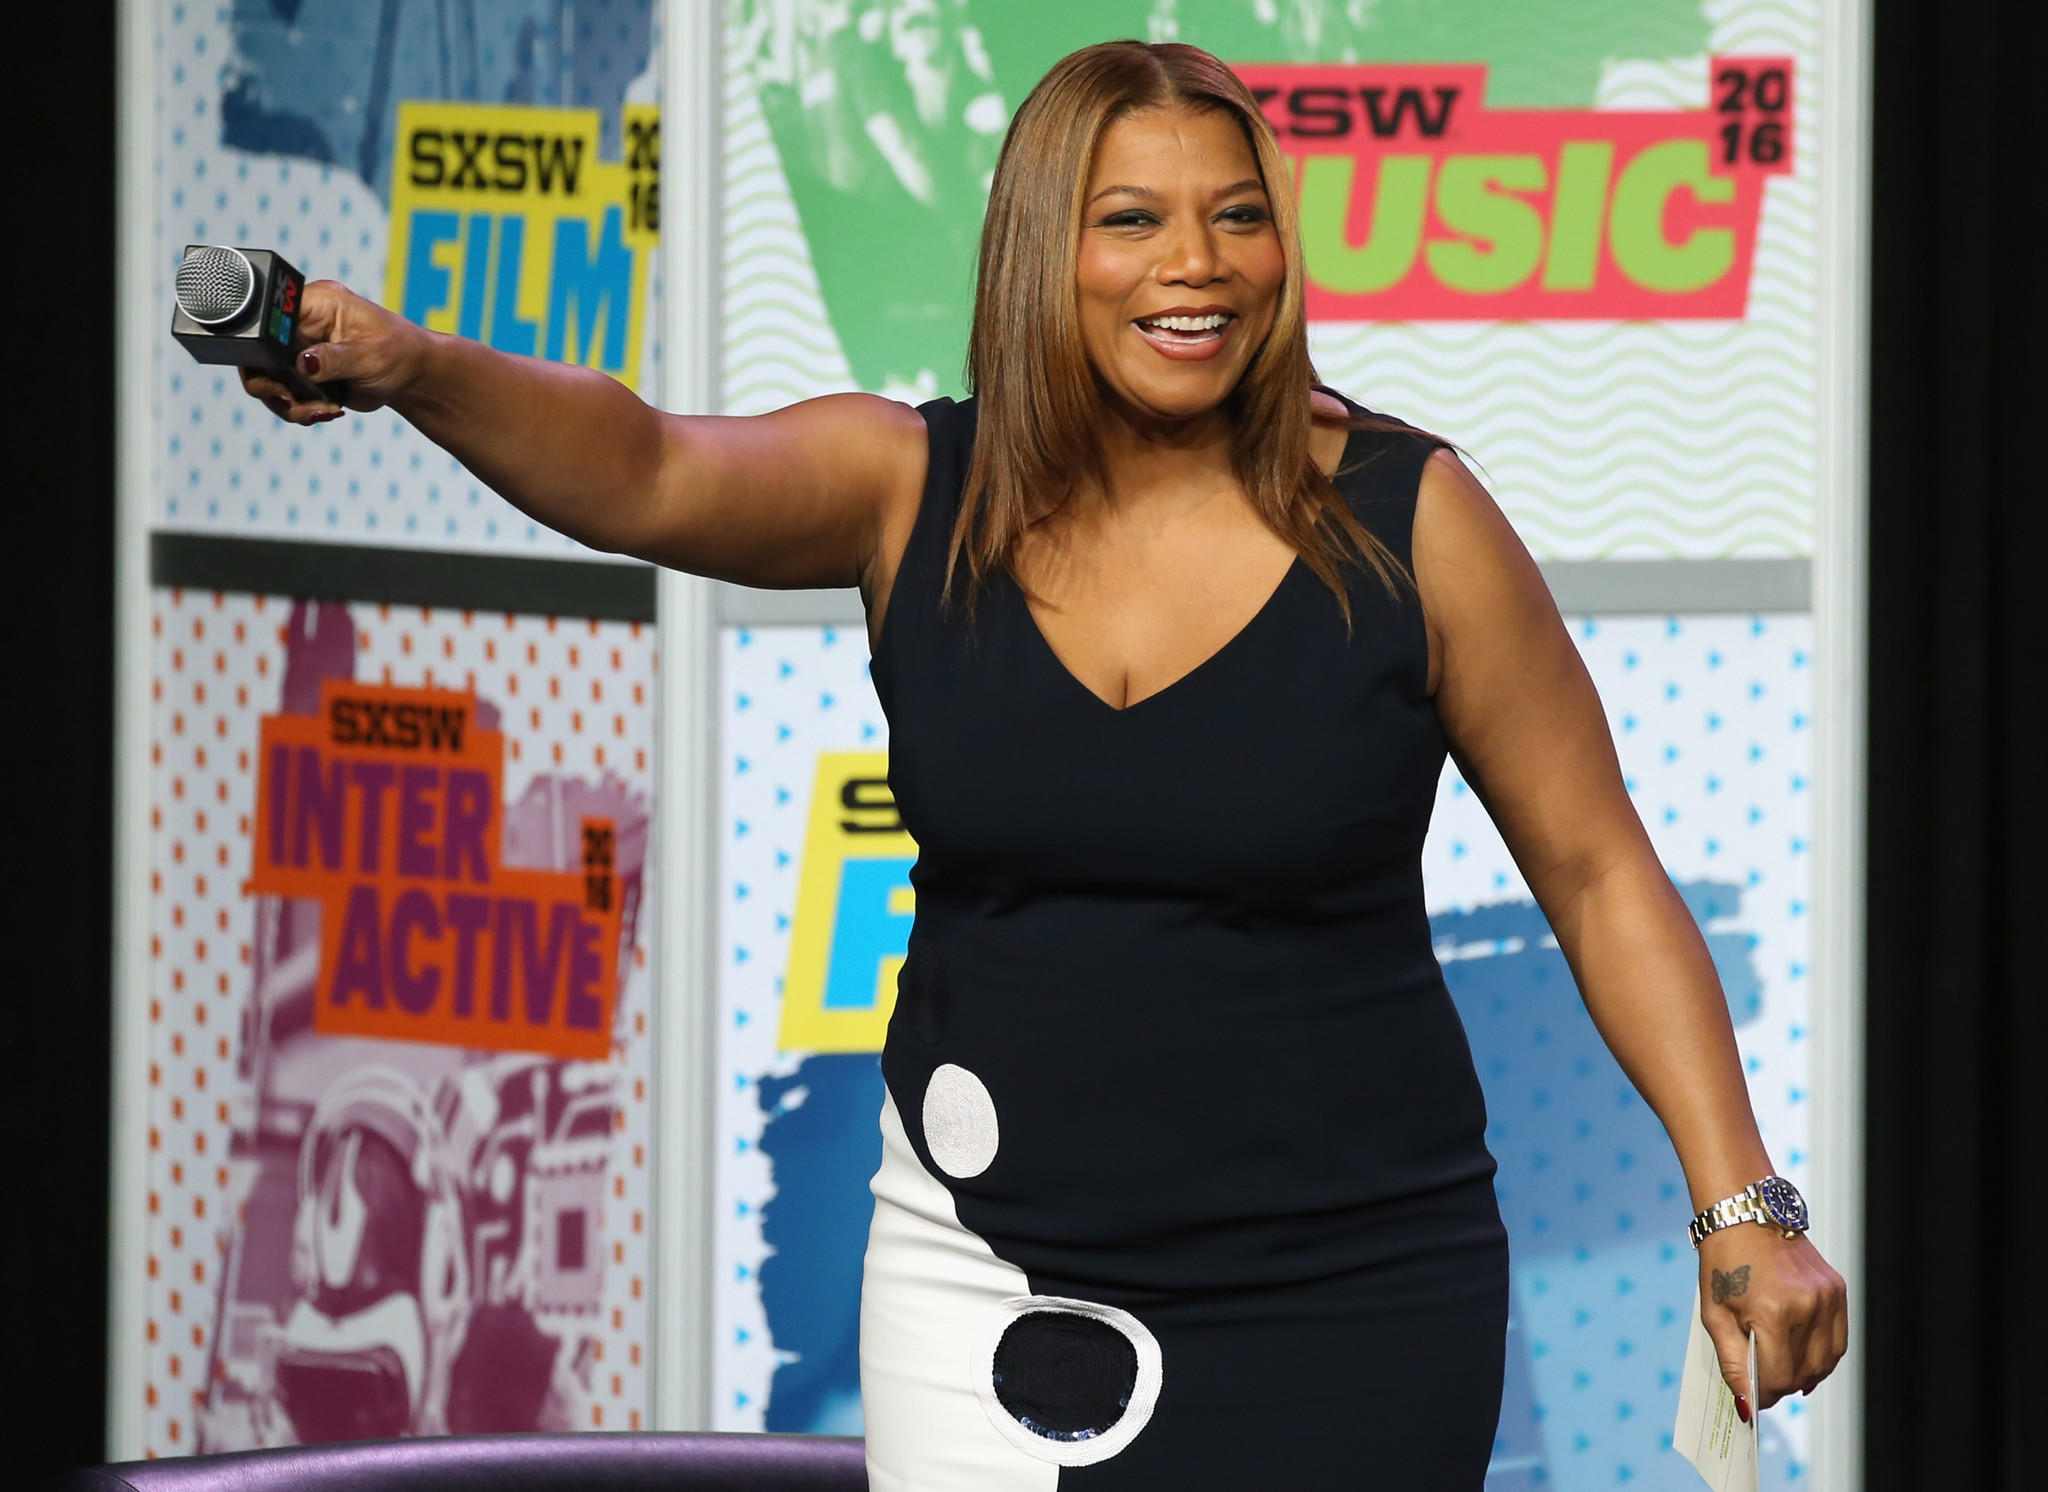 Queen Latifah during the SXSW keynote address. (Neilson Barnard / Getty Images)